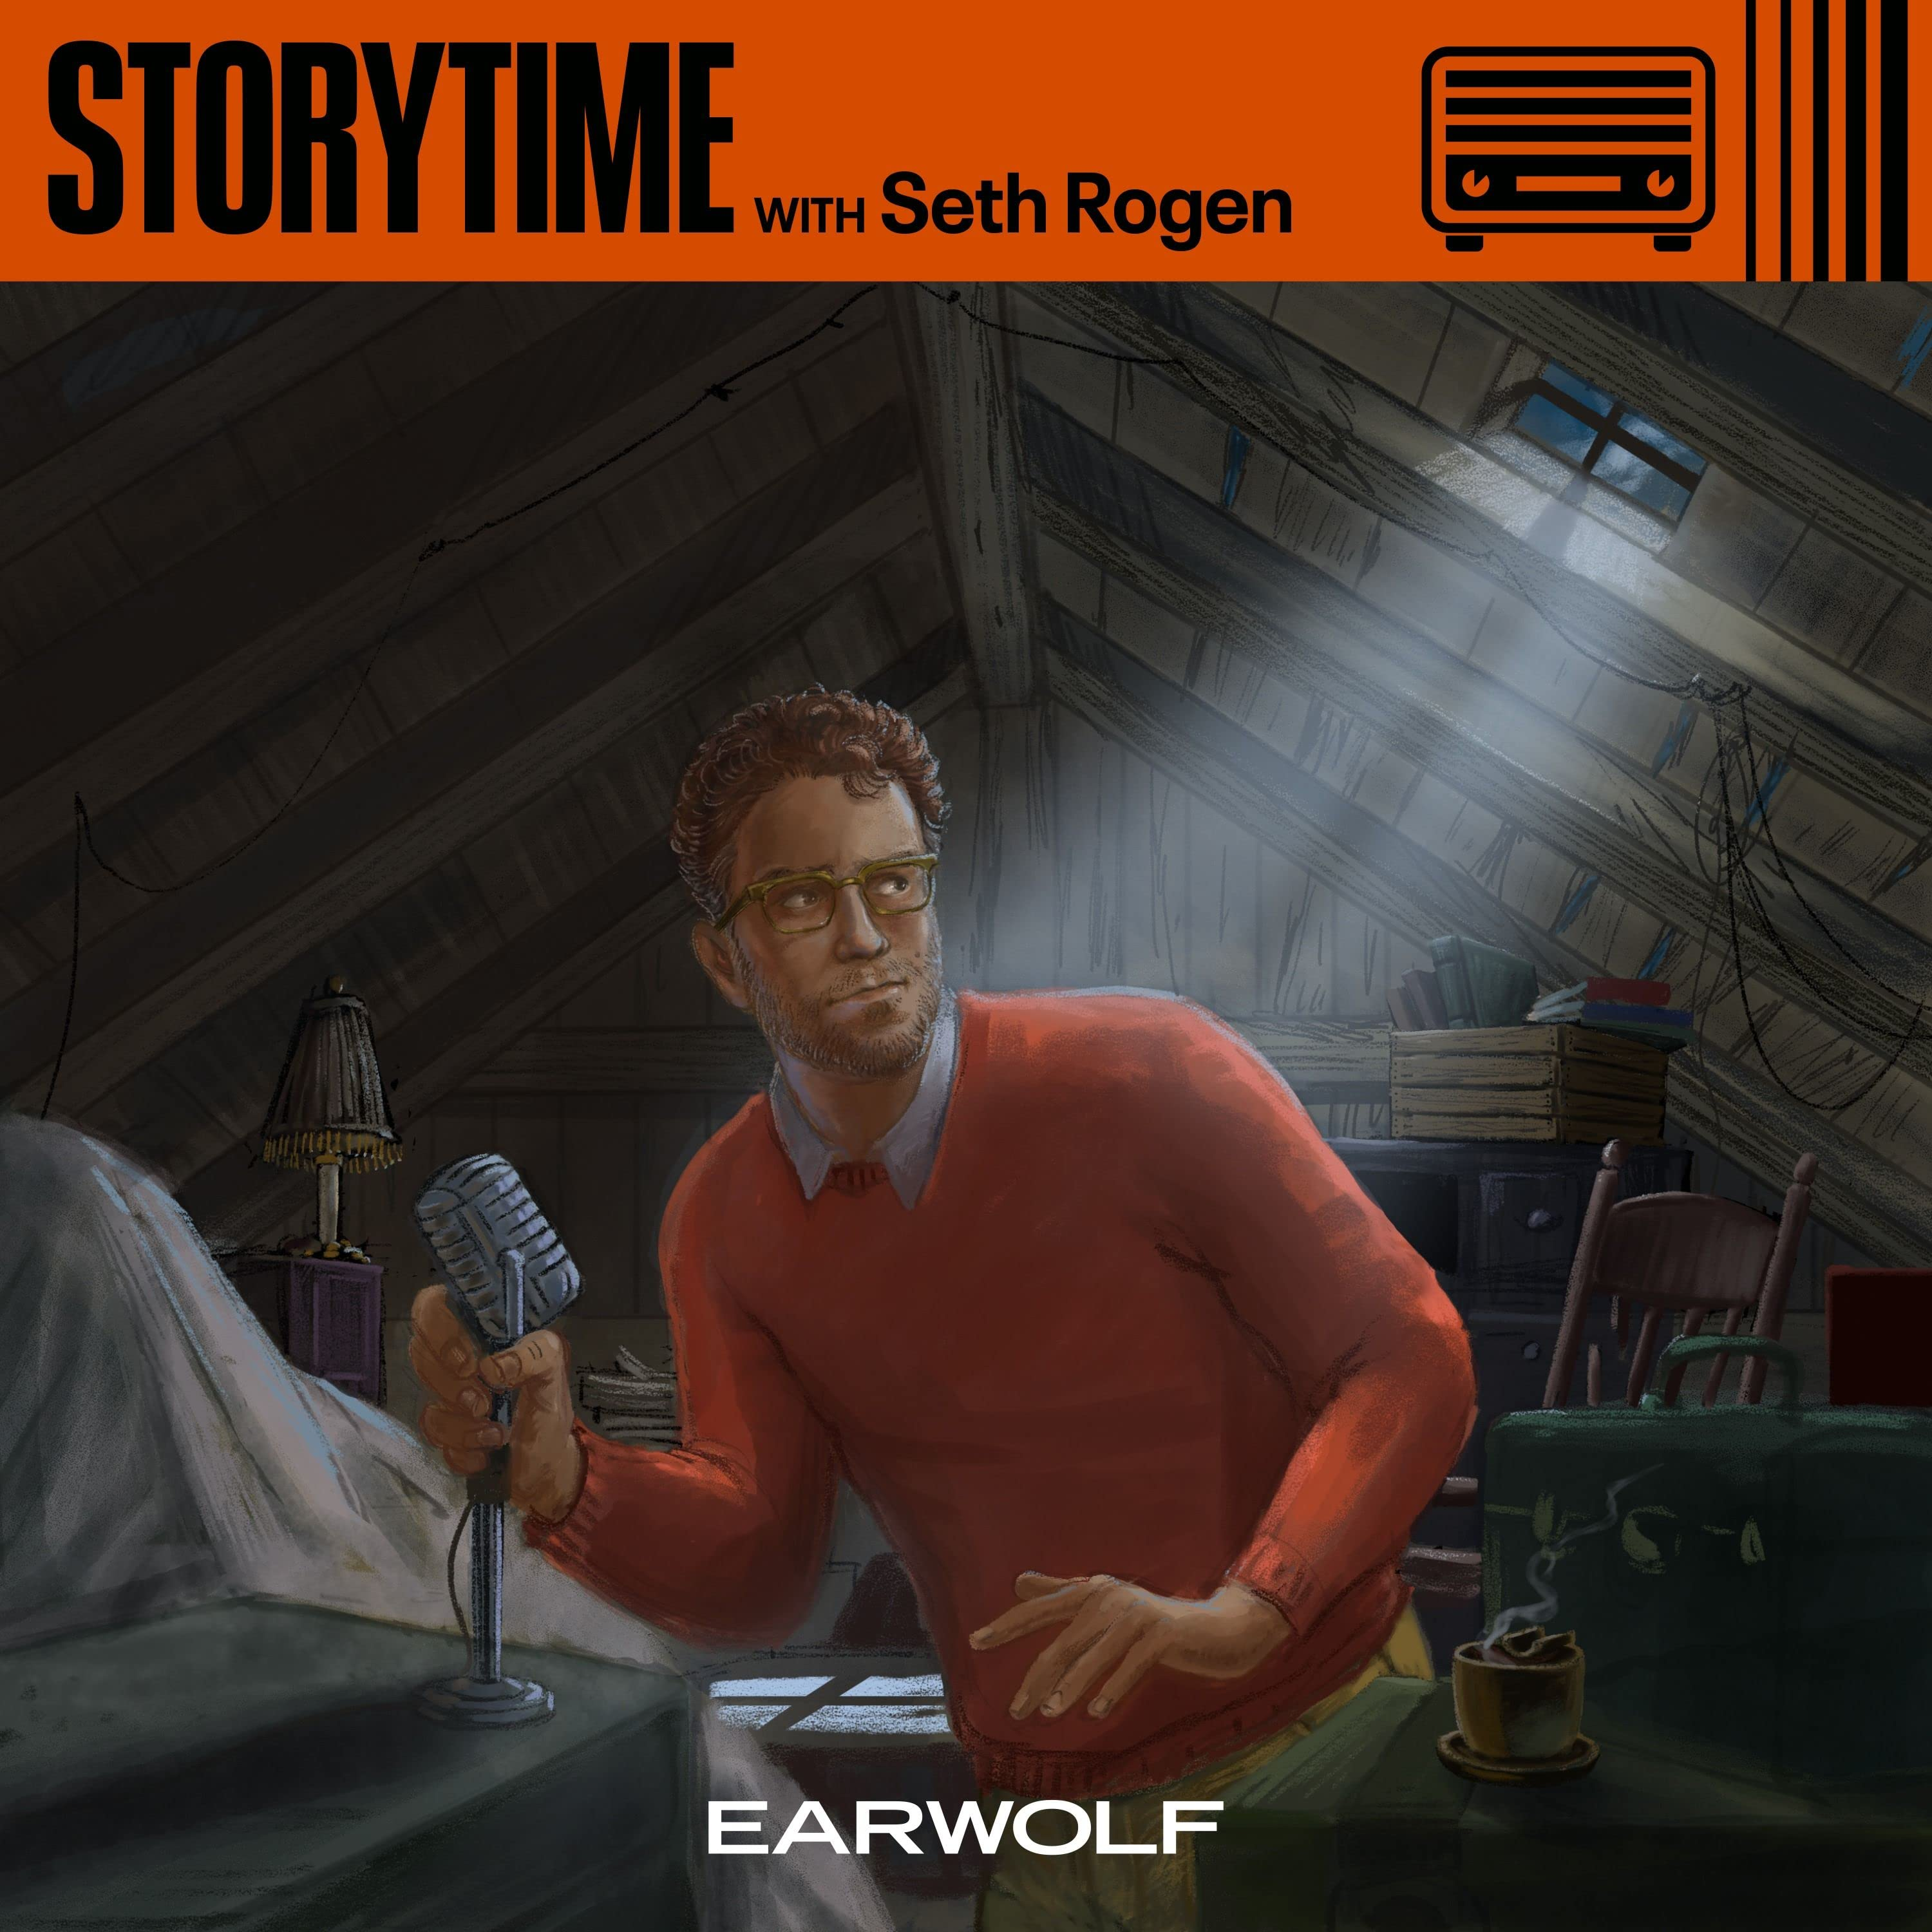 Storytime with Seth Rogen